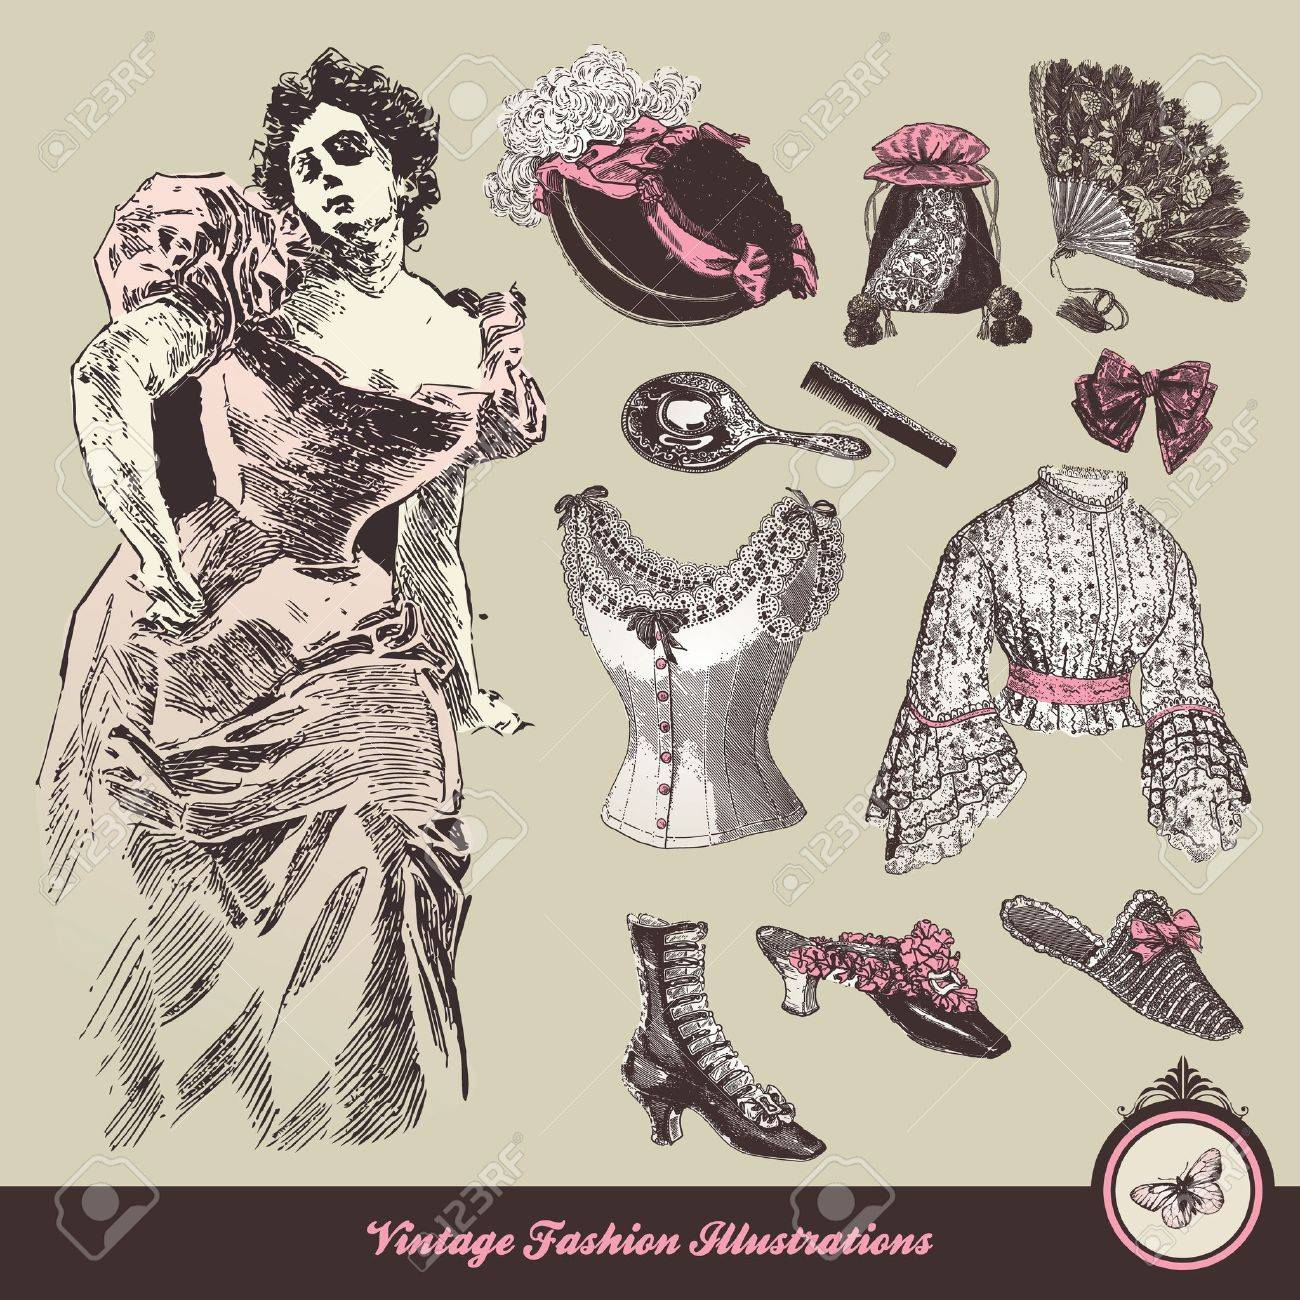 Vintage fashion - clothes and accessories collection - 10917860